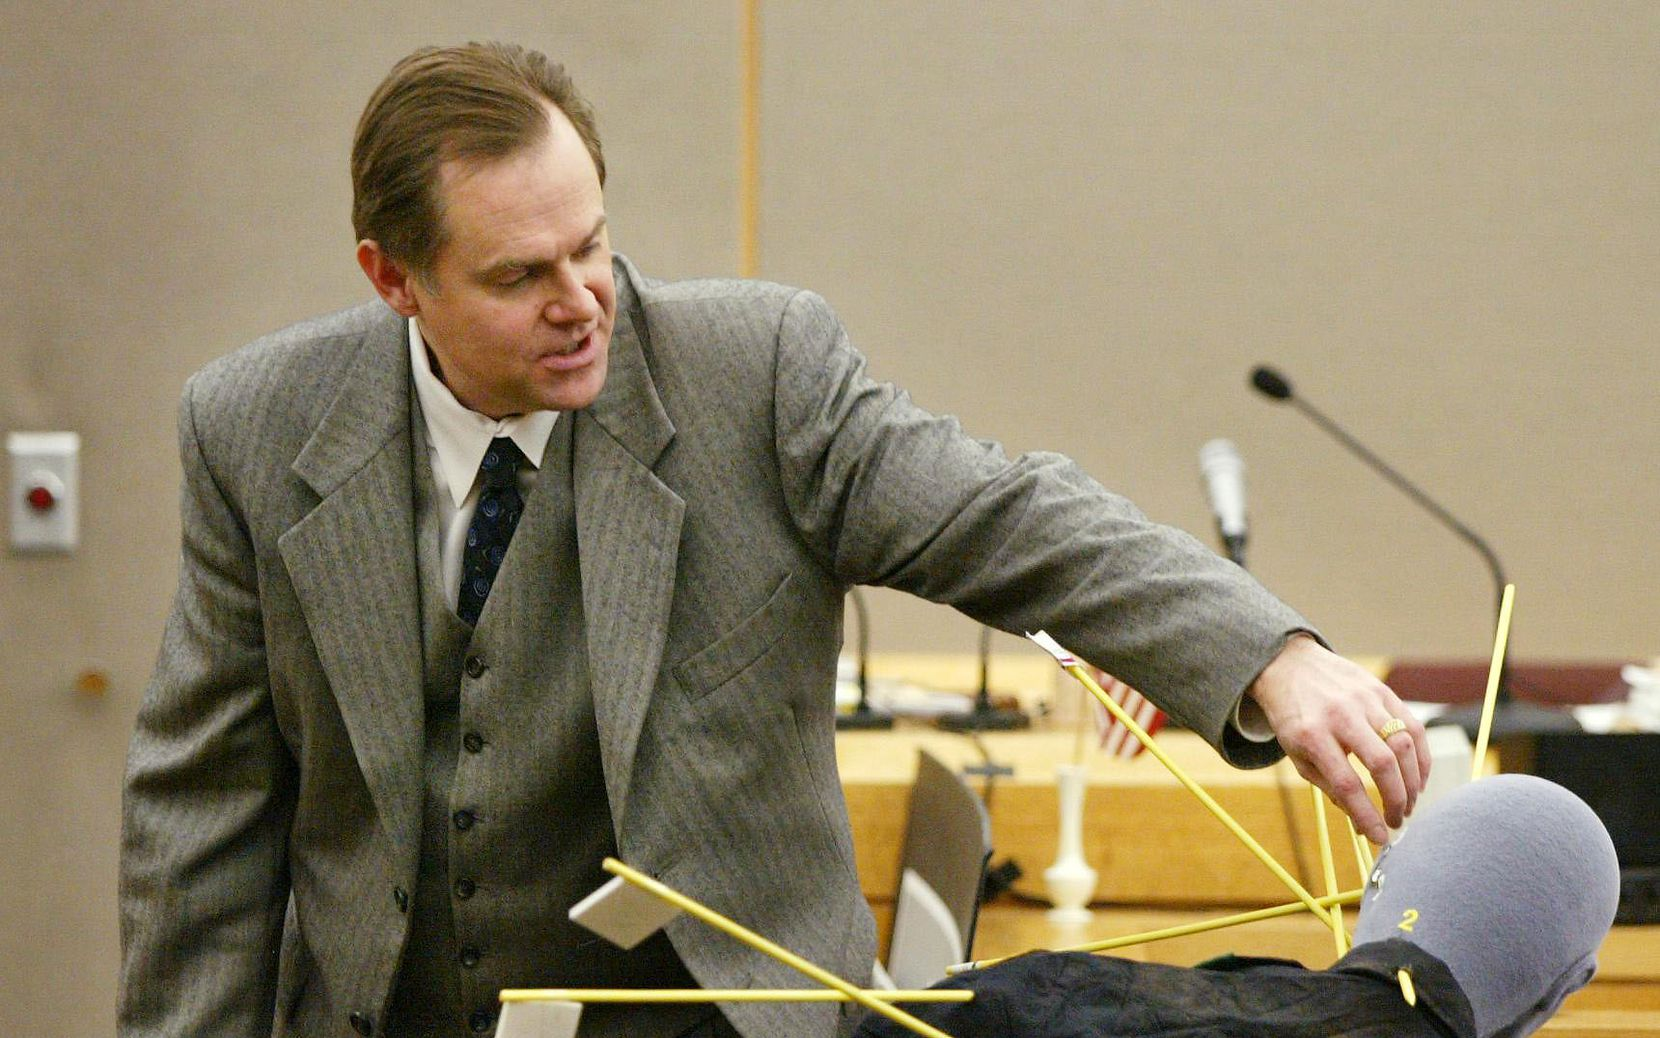 """Dr. Jeffrey Barnard testifies during the January 2002 murder trial of """"Texas 7"""" escapee Donald Newbury about the gunshot wounds that killed Irving police Officer Aubrey Hawkins on Christmas Eve 2000. Newbury was sentenced to death and was executed in February 2015."""